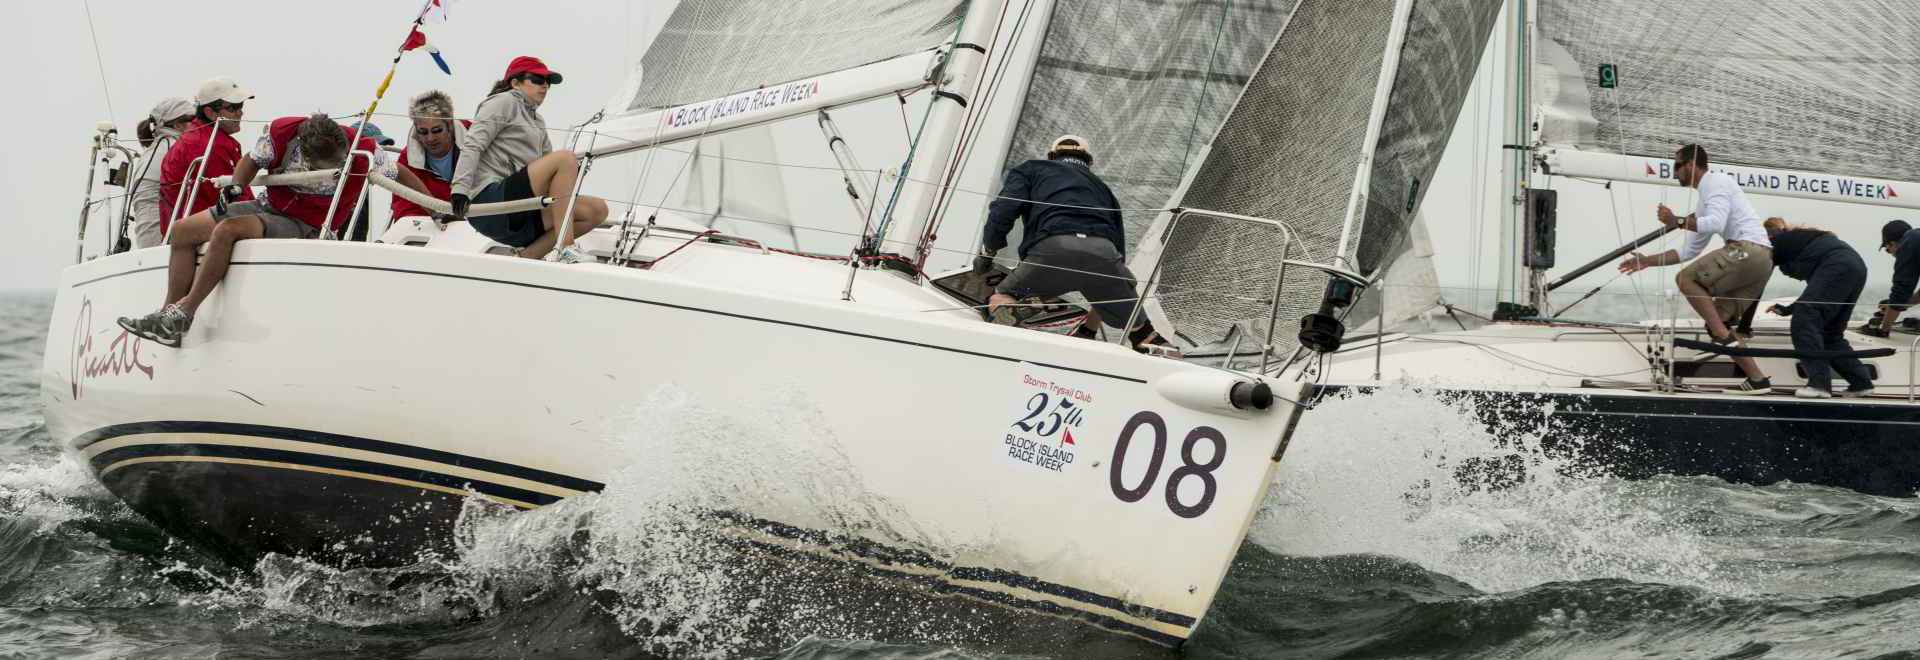 Robert Salk's J/109, Picante, eighth in its class in 2013, rounds the weather mark